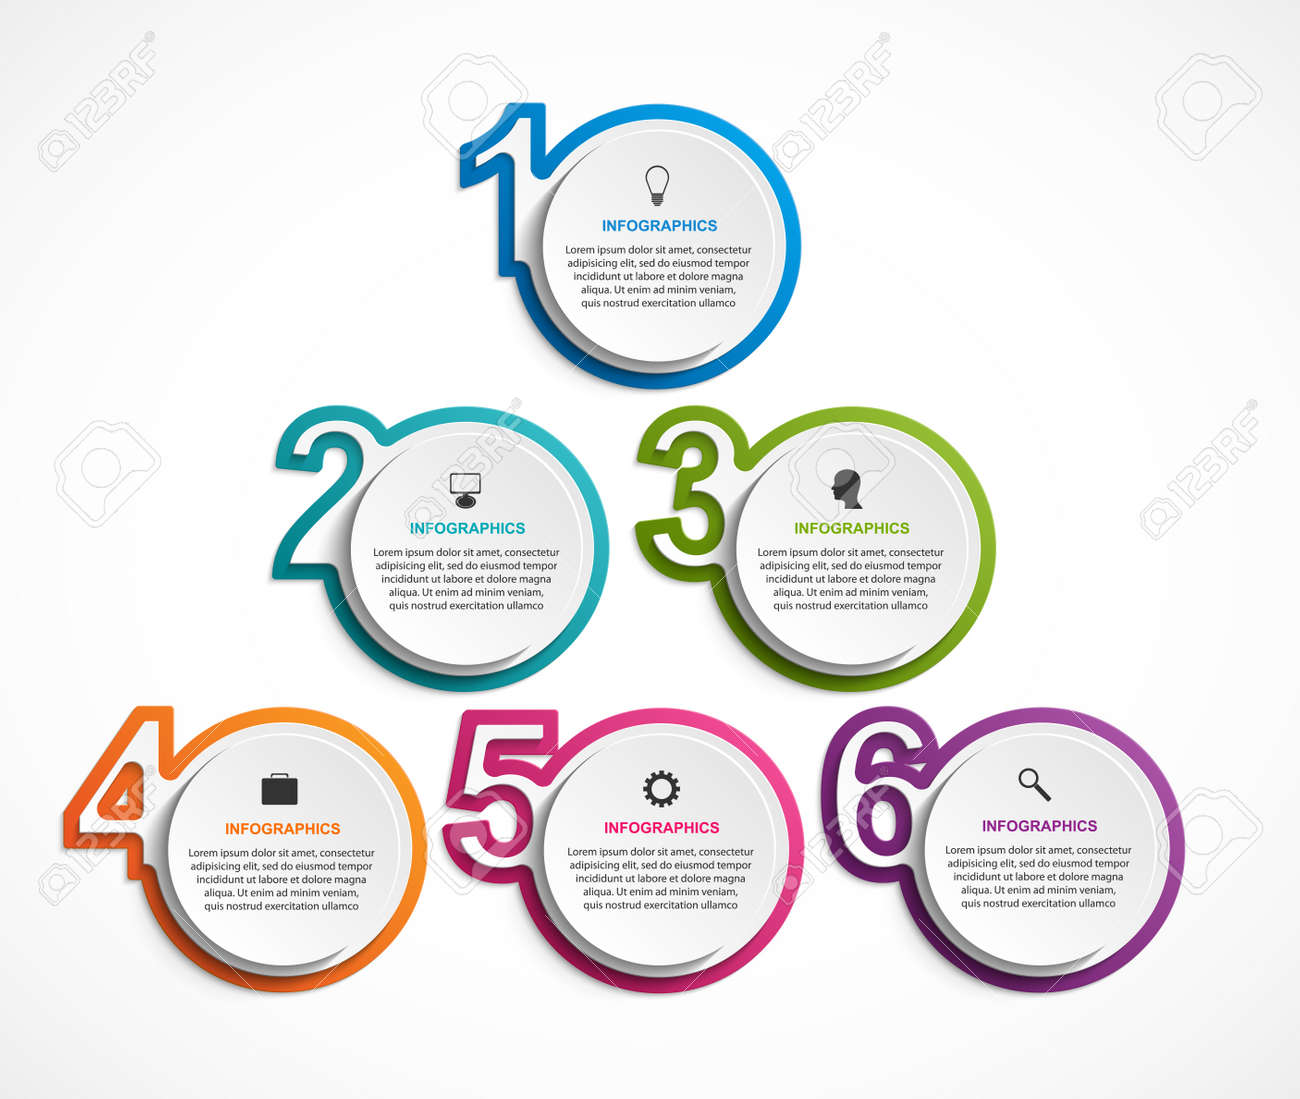 Numeric infographic template. Infographics for business presentations or information banner. - 122291916